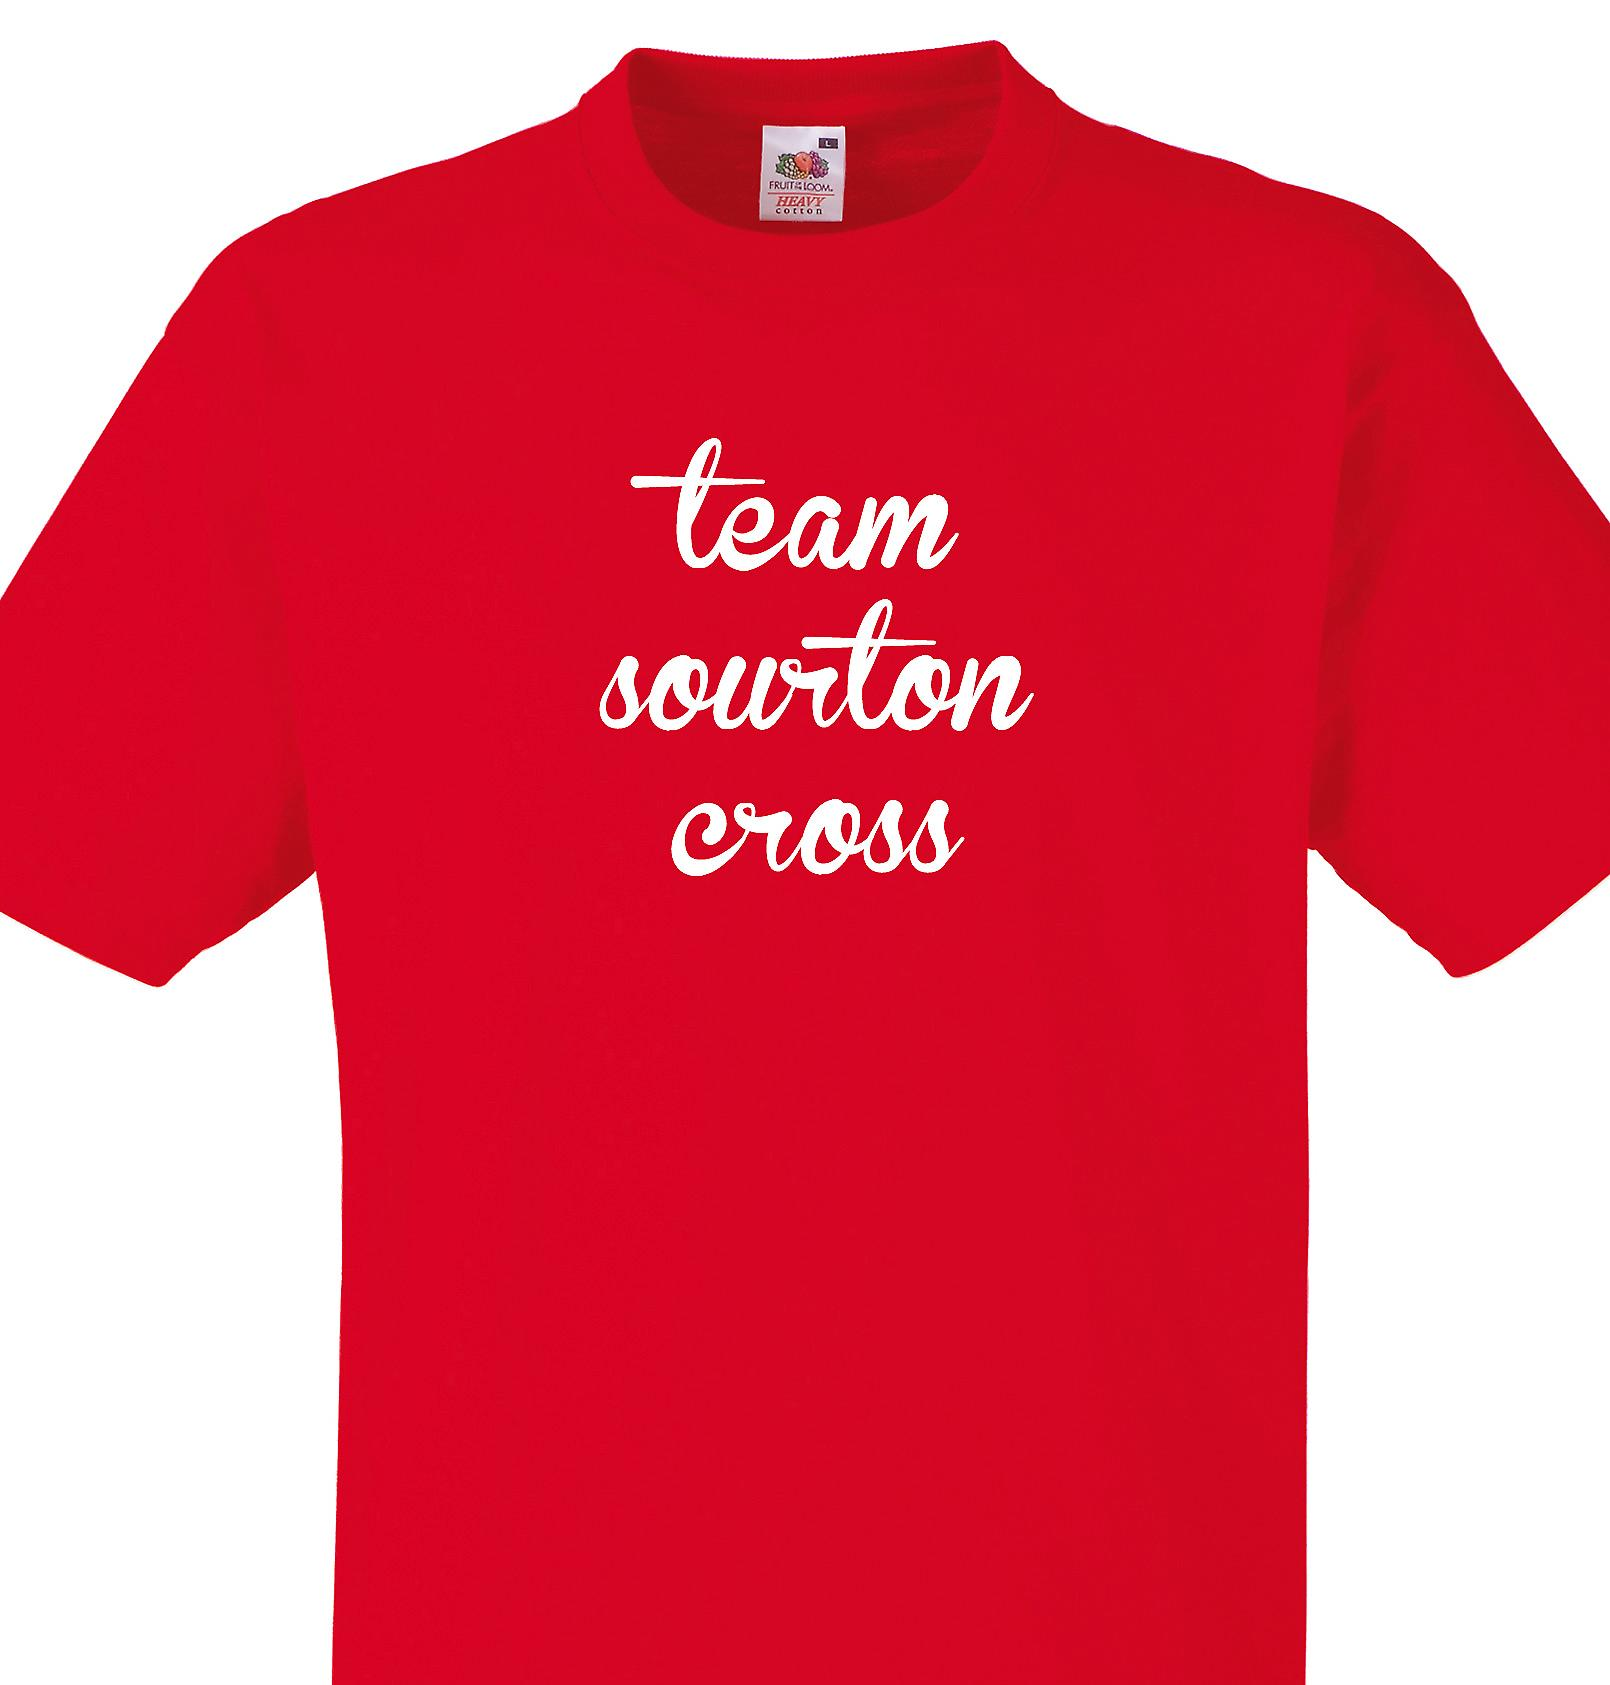 Team Sourton cross Red T shirt